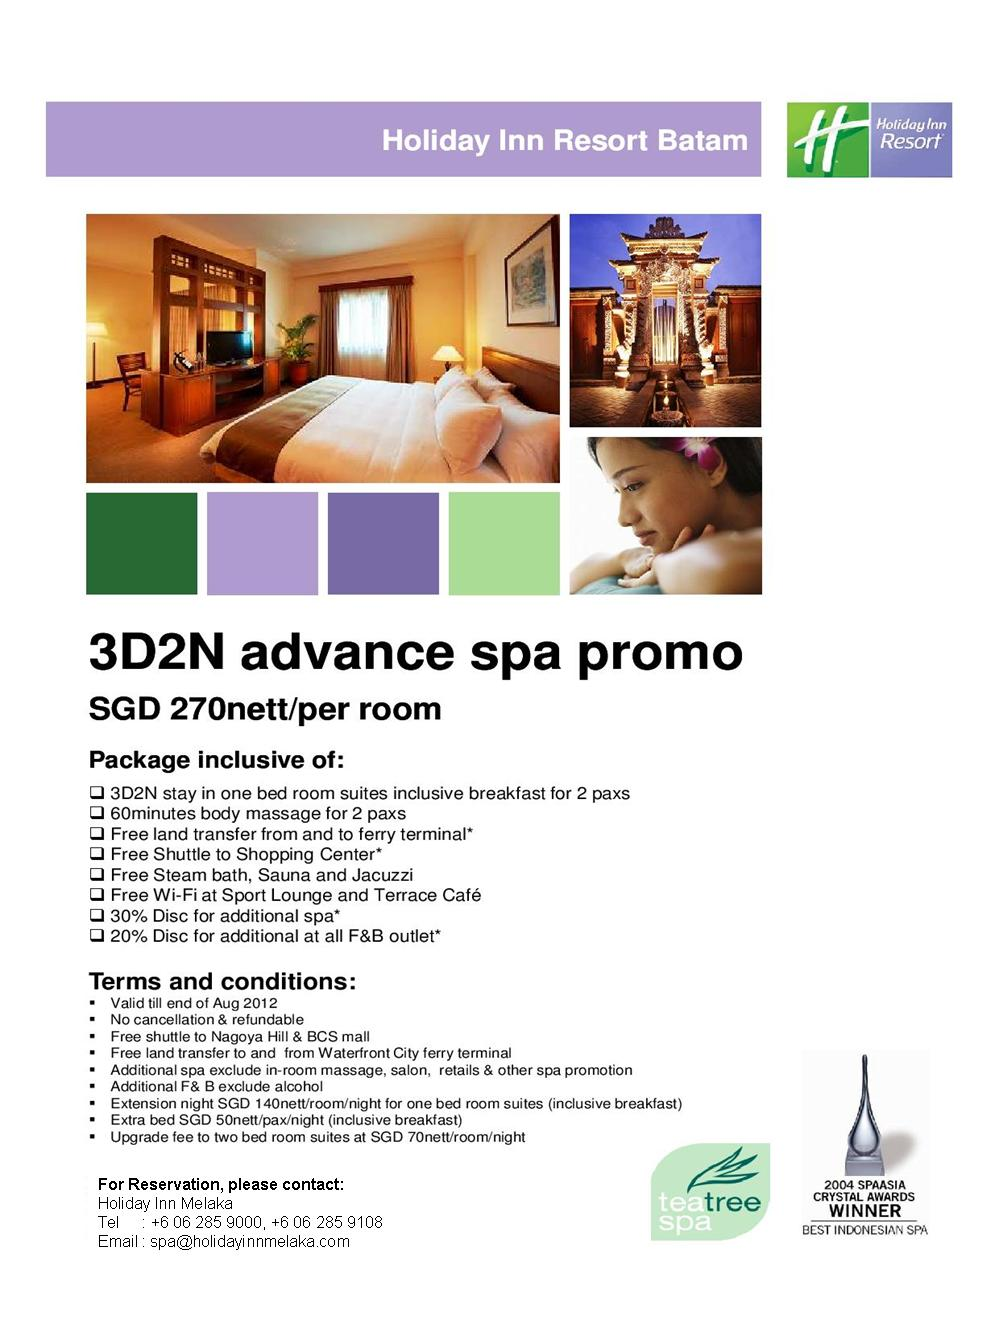 Holiday inn discount coupons